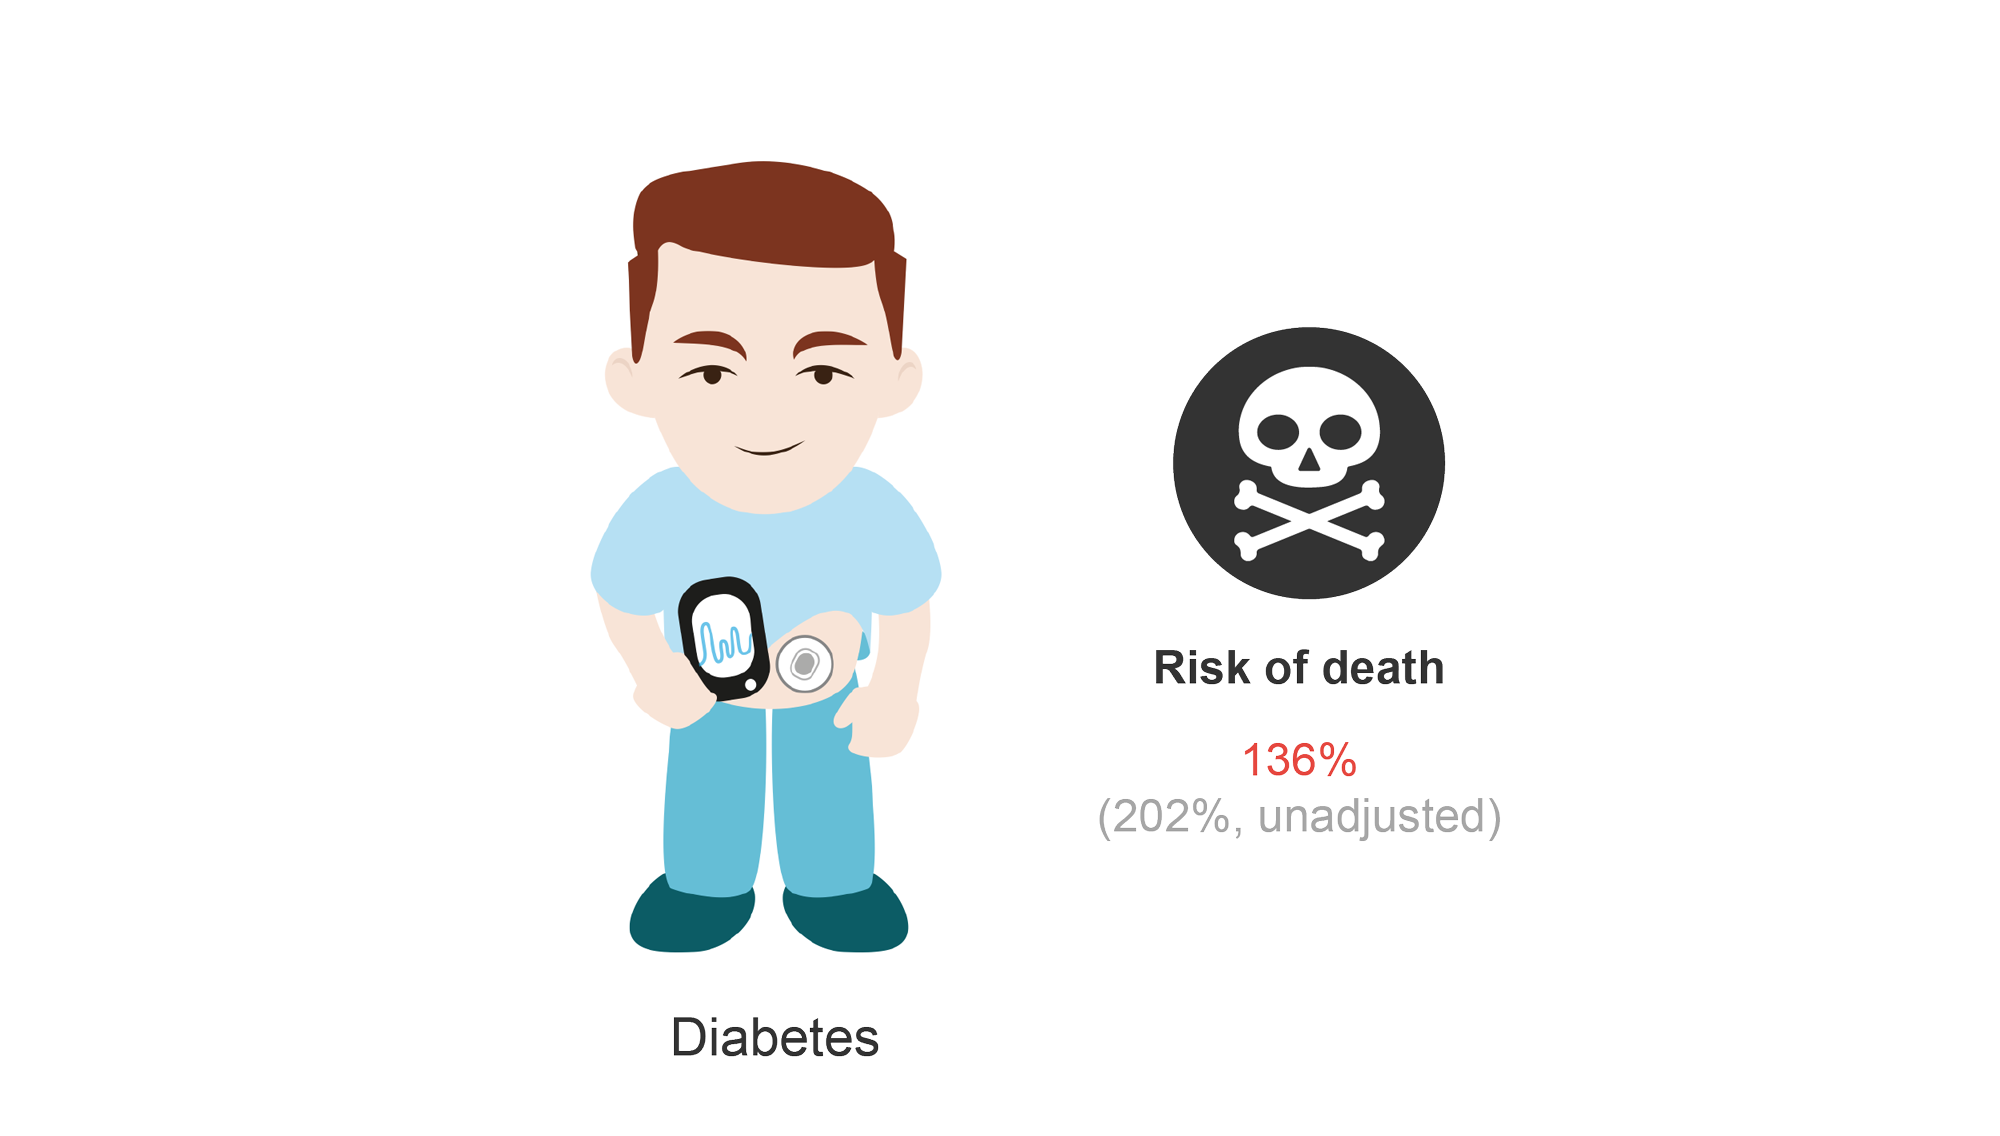 Male patient with diabetes and risk of death (136%). Cartoon